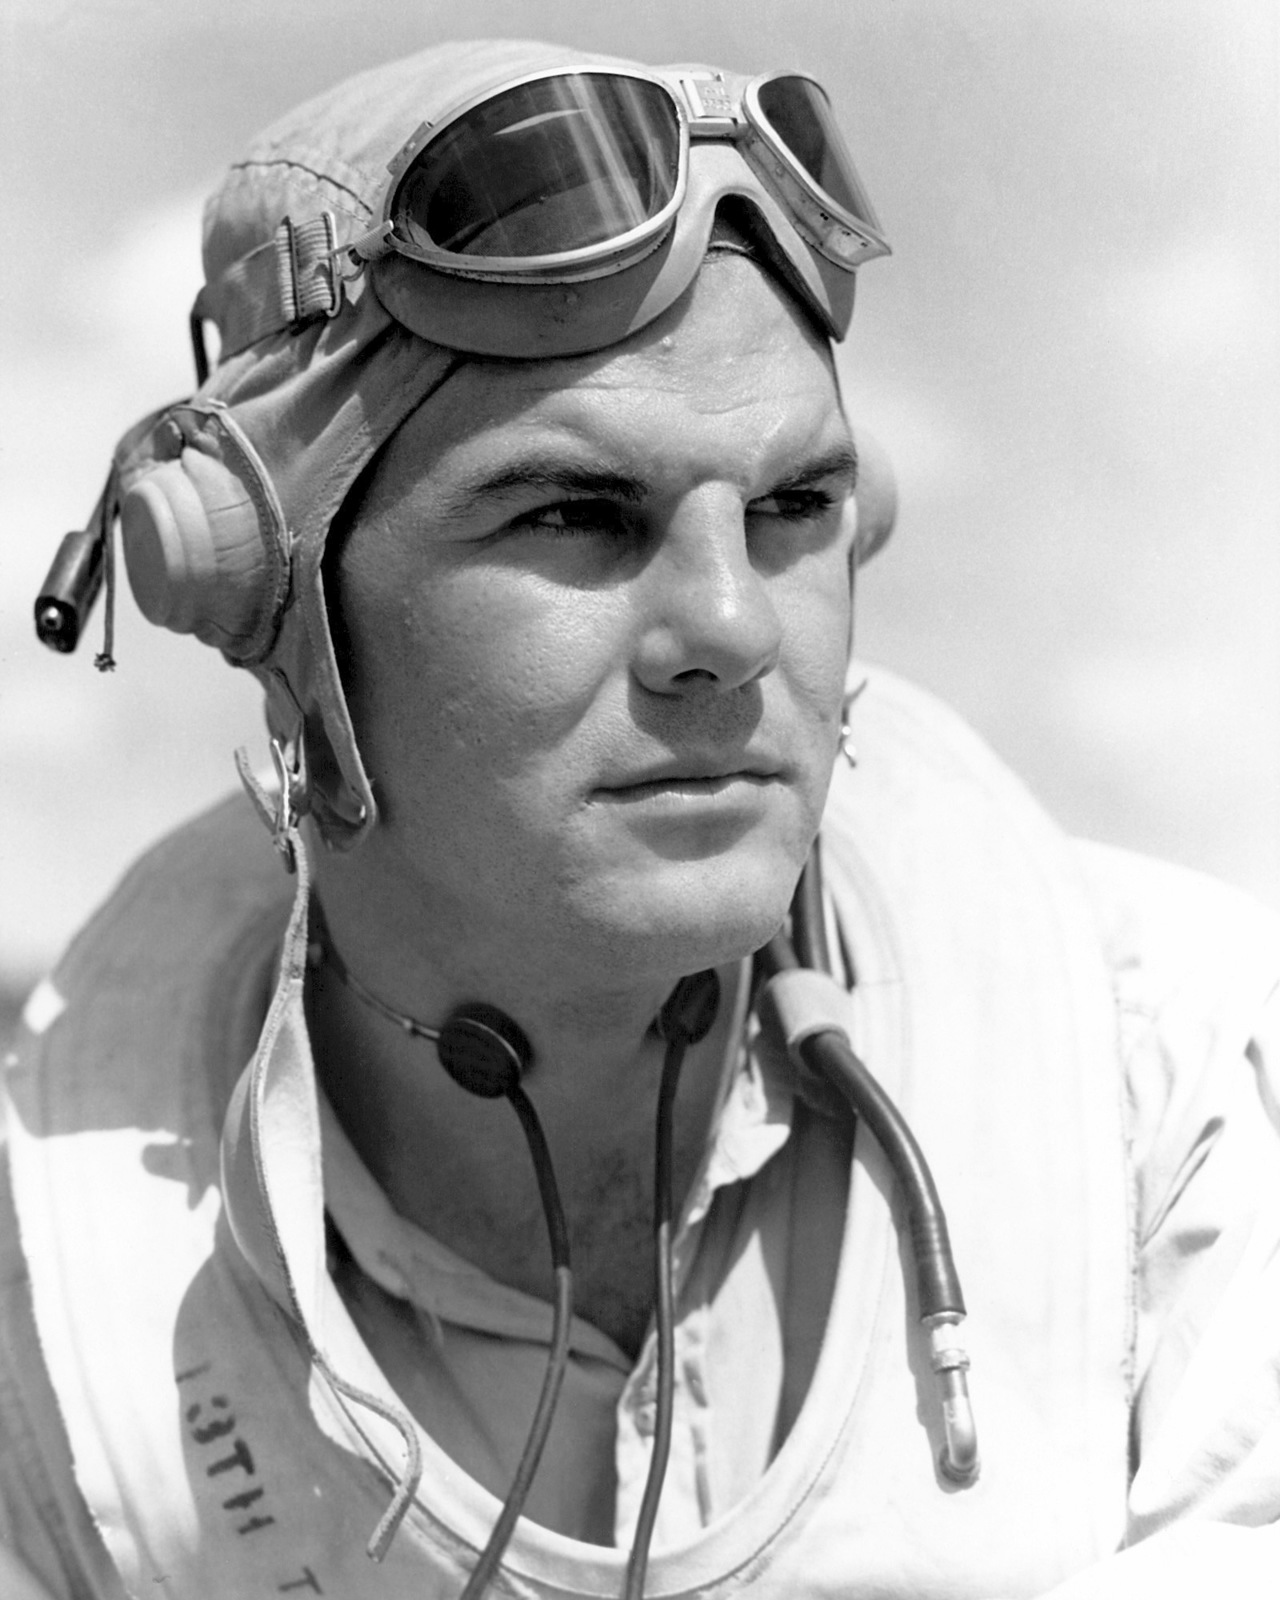 United States Marine Corps Captain (CPT) Harold L. Spears. Official Portrait